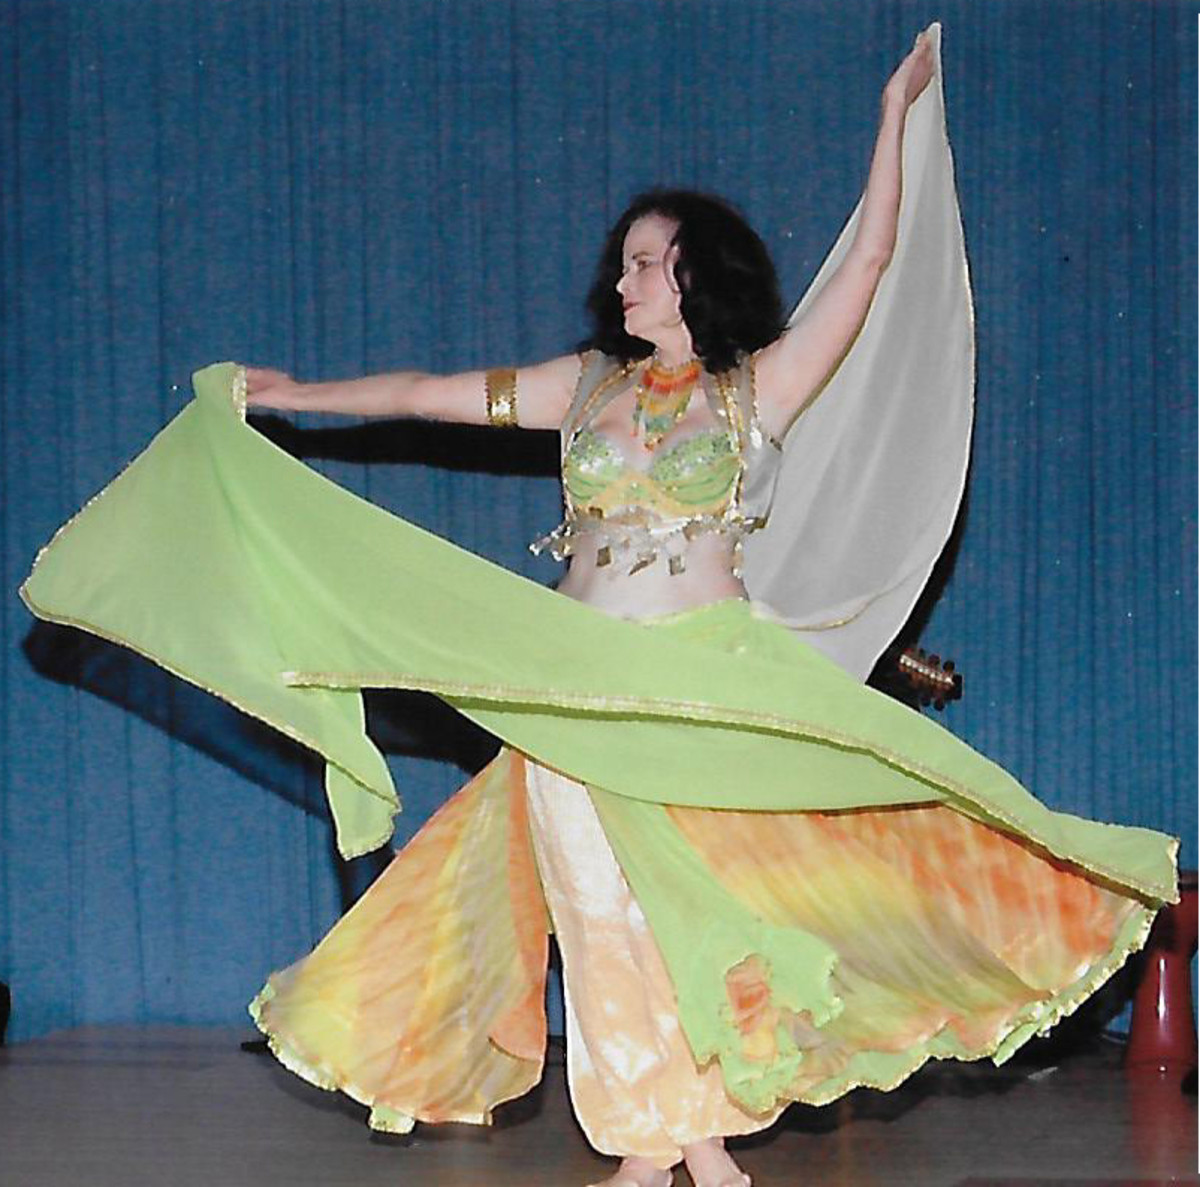 A belly dancer performing with 2 veils.